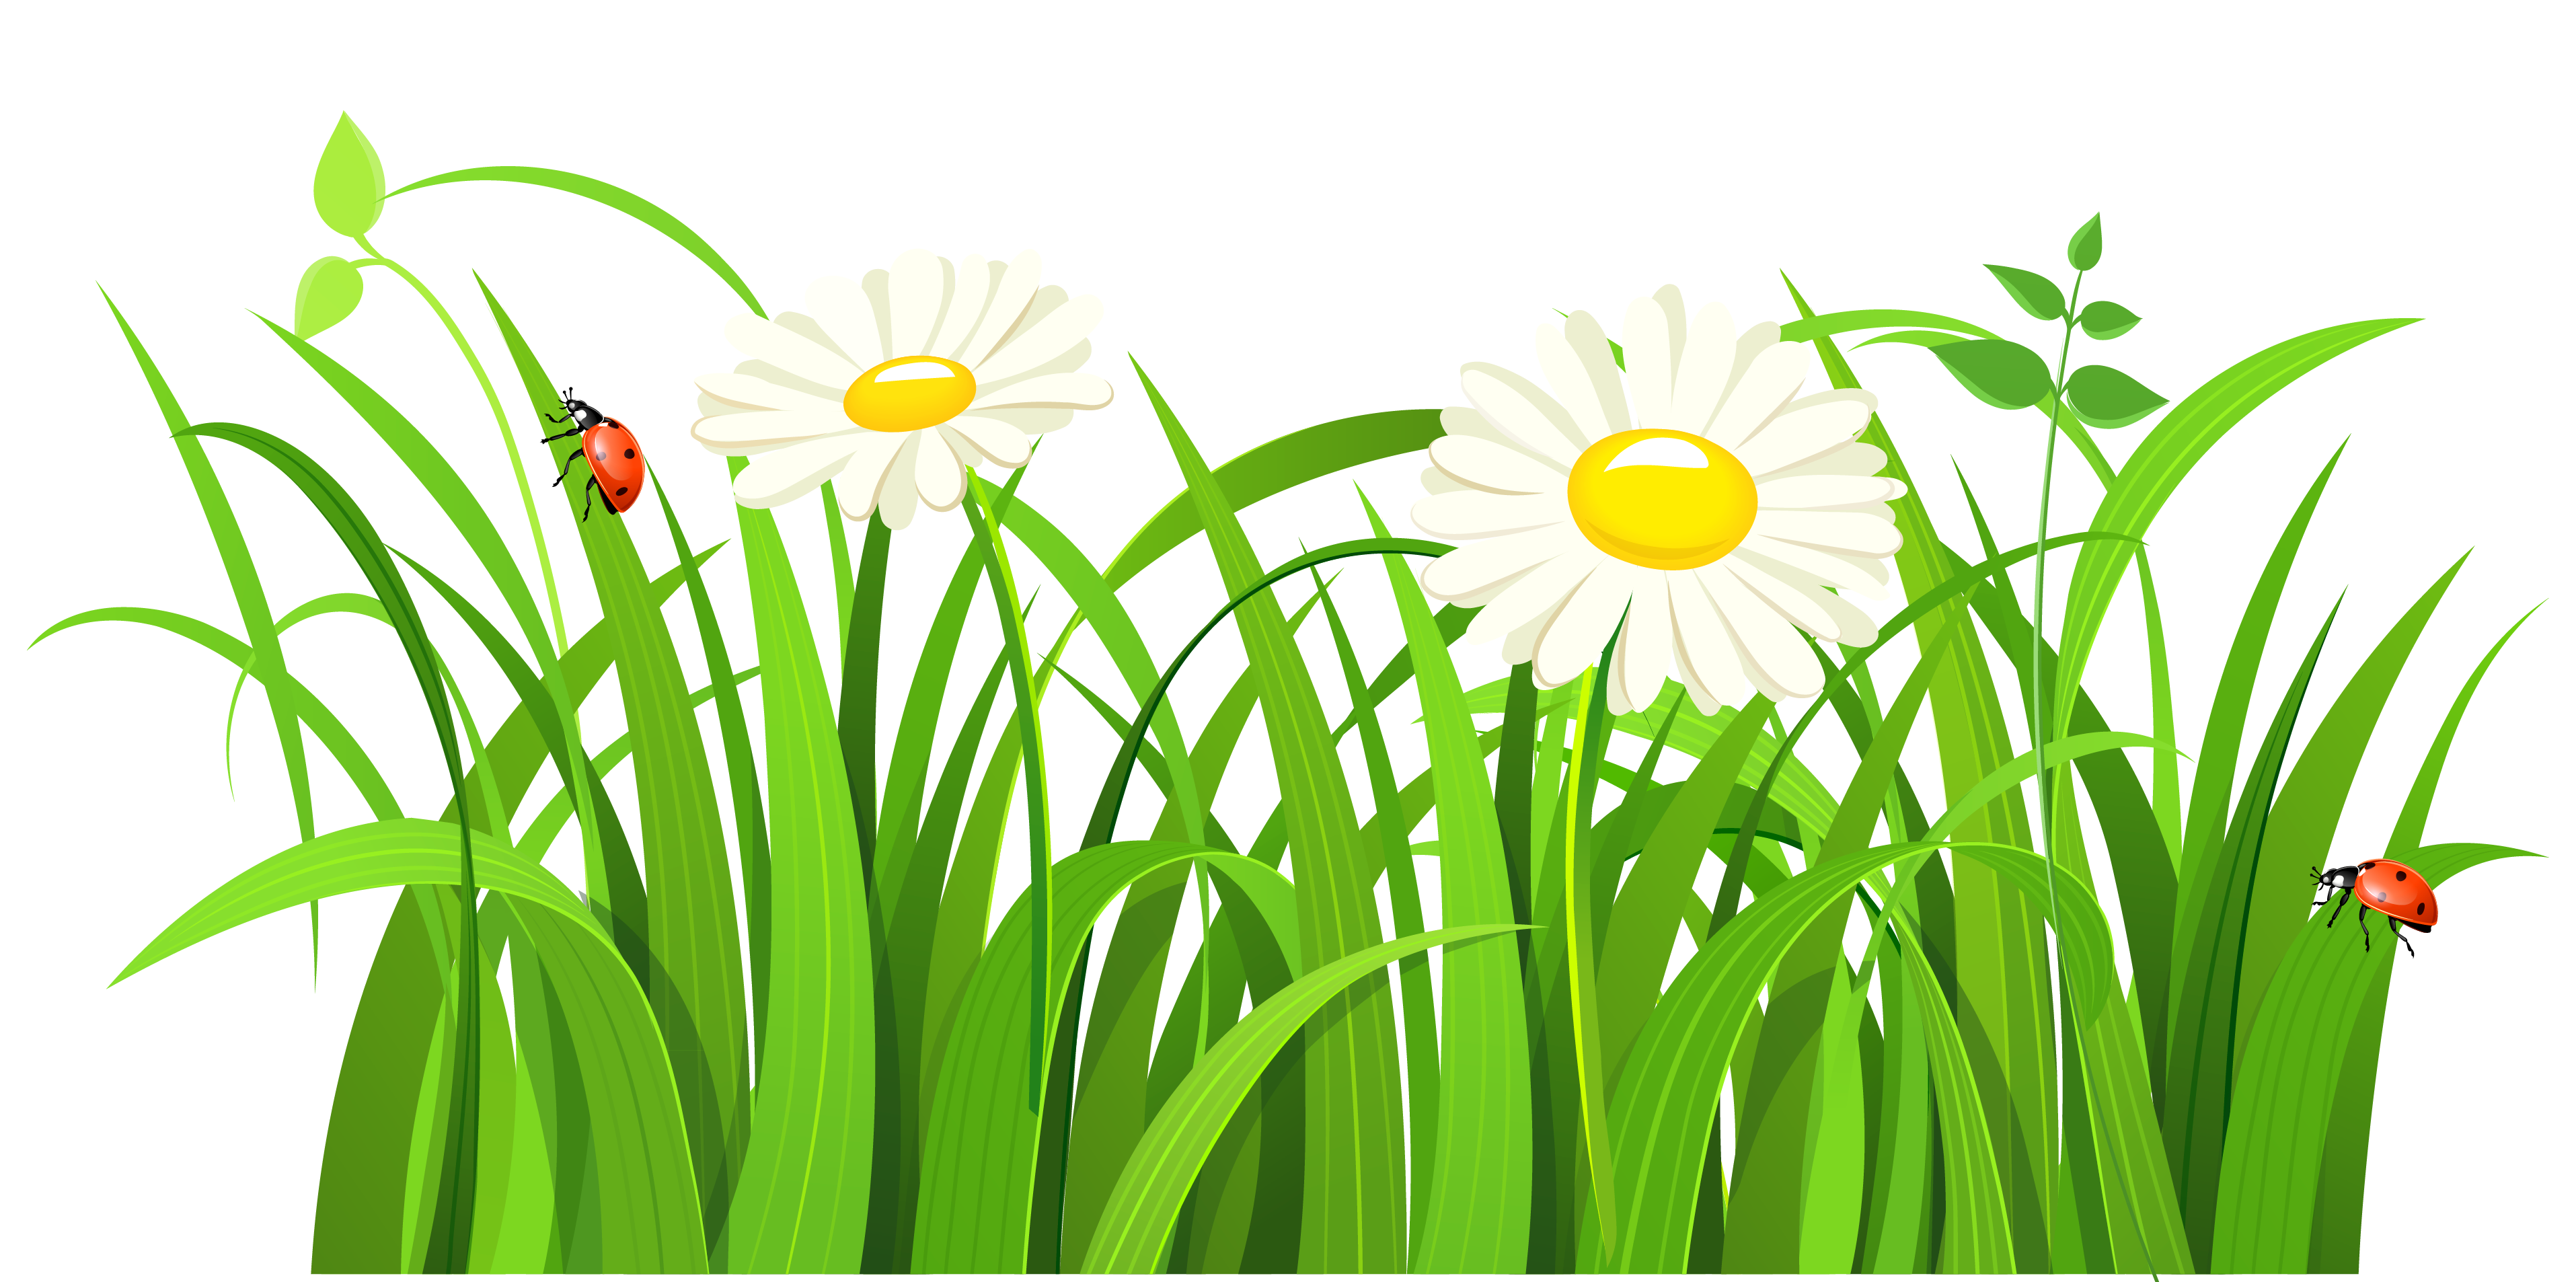 Daisy clipart plant insect. Grass with daisies and